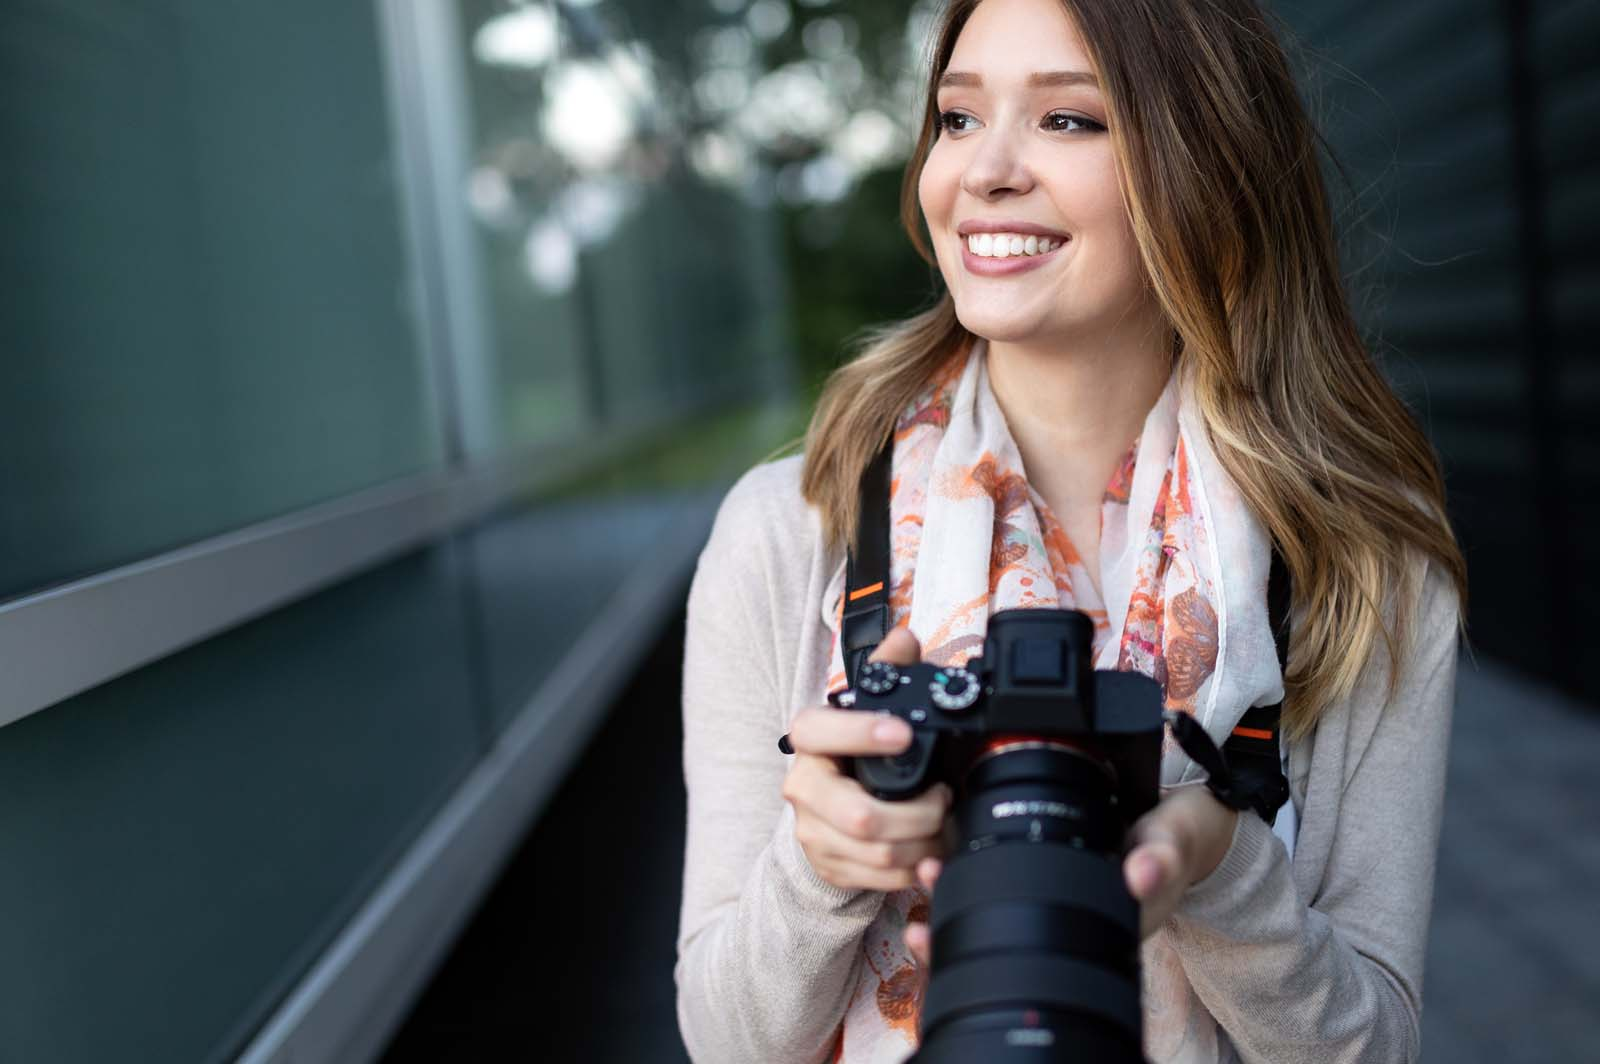 freelance photographer woman smiling